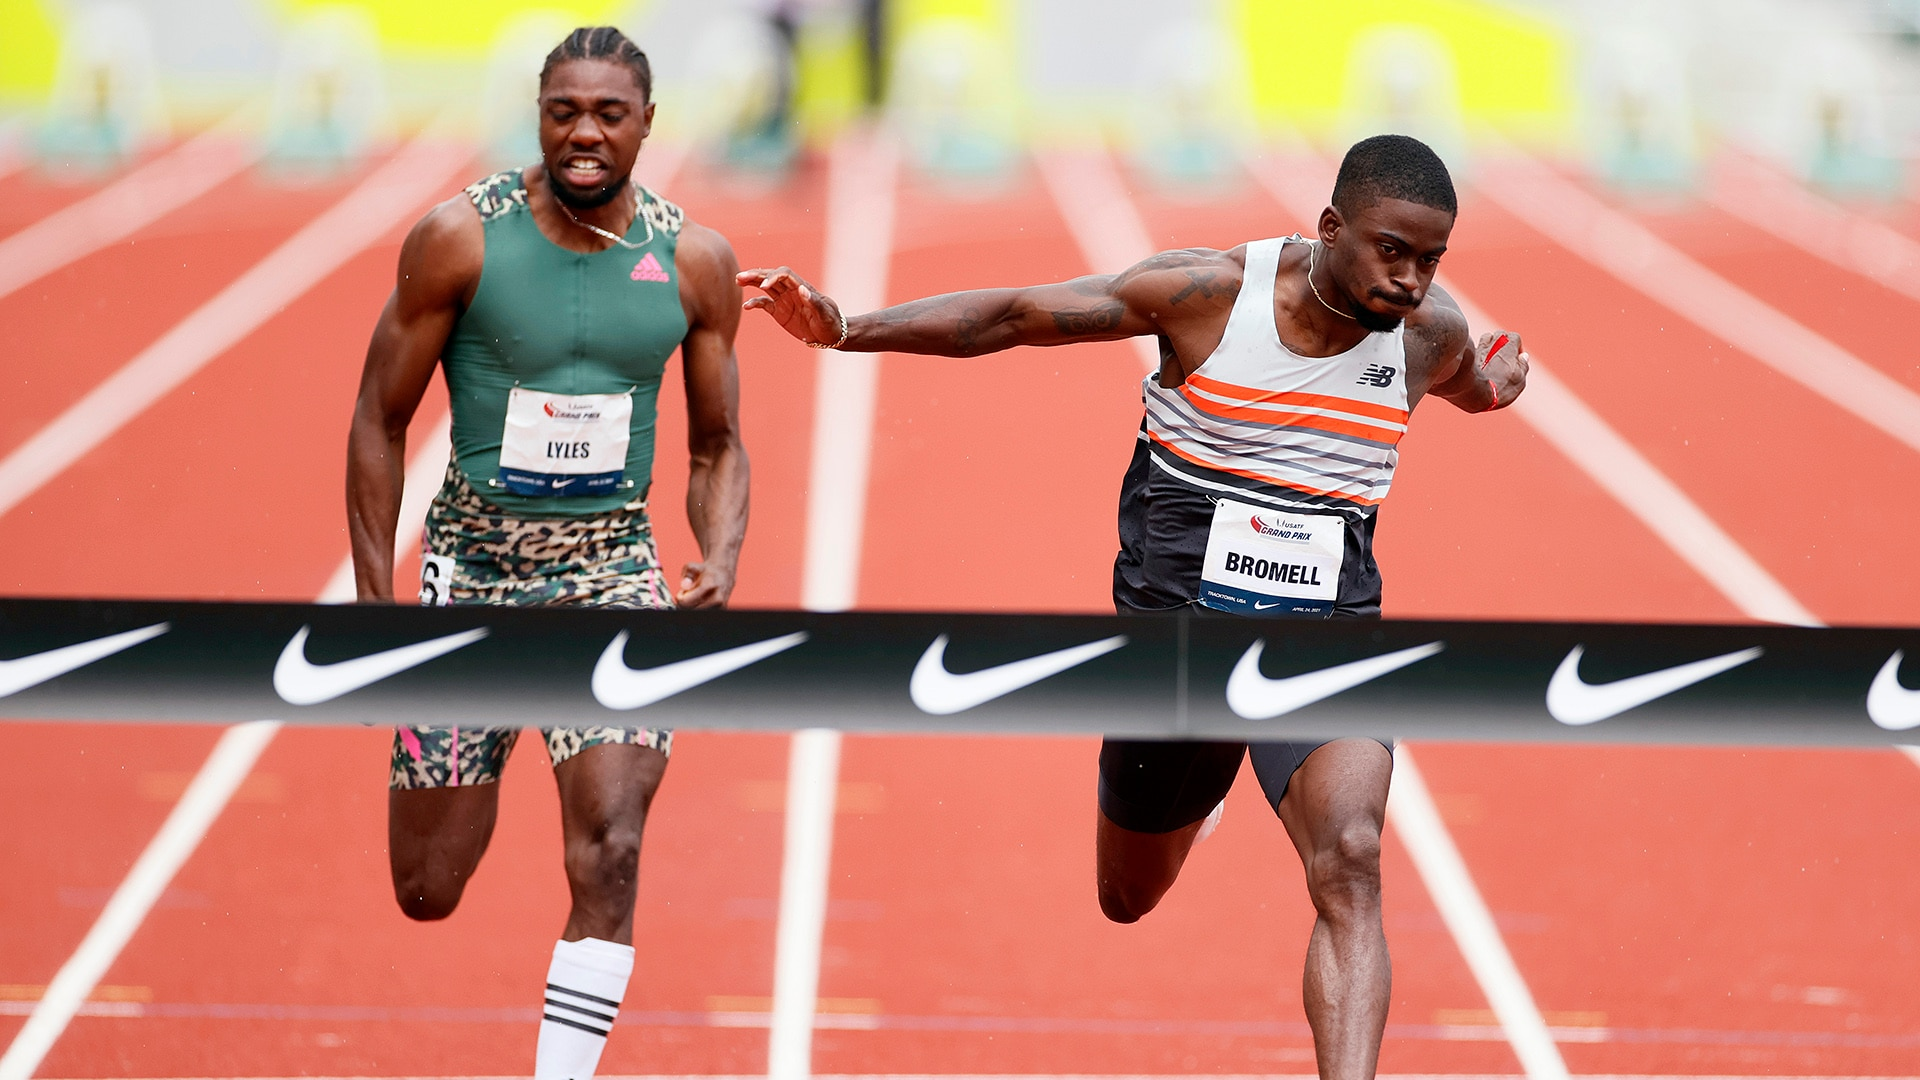 Trayvon Bromell beats Noah Lyles in the 100m at the USATF Grand Prix at the 2021 Oregon Relays